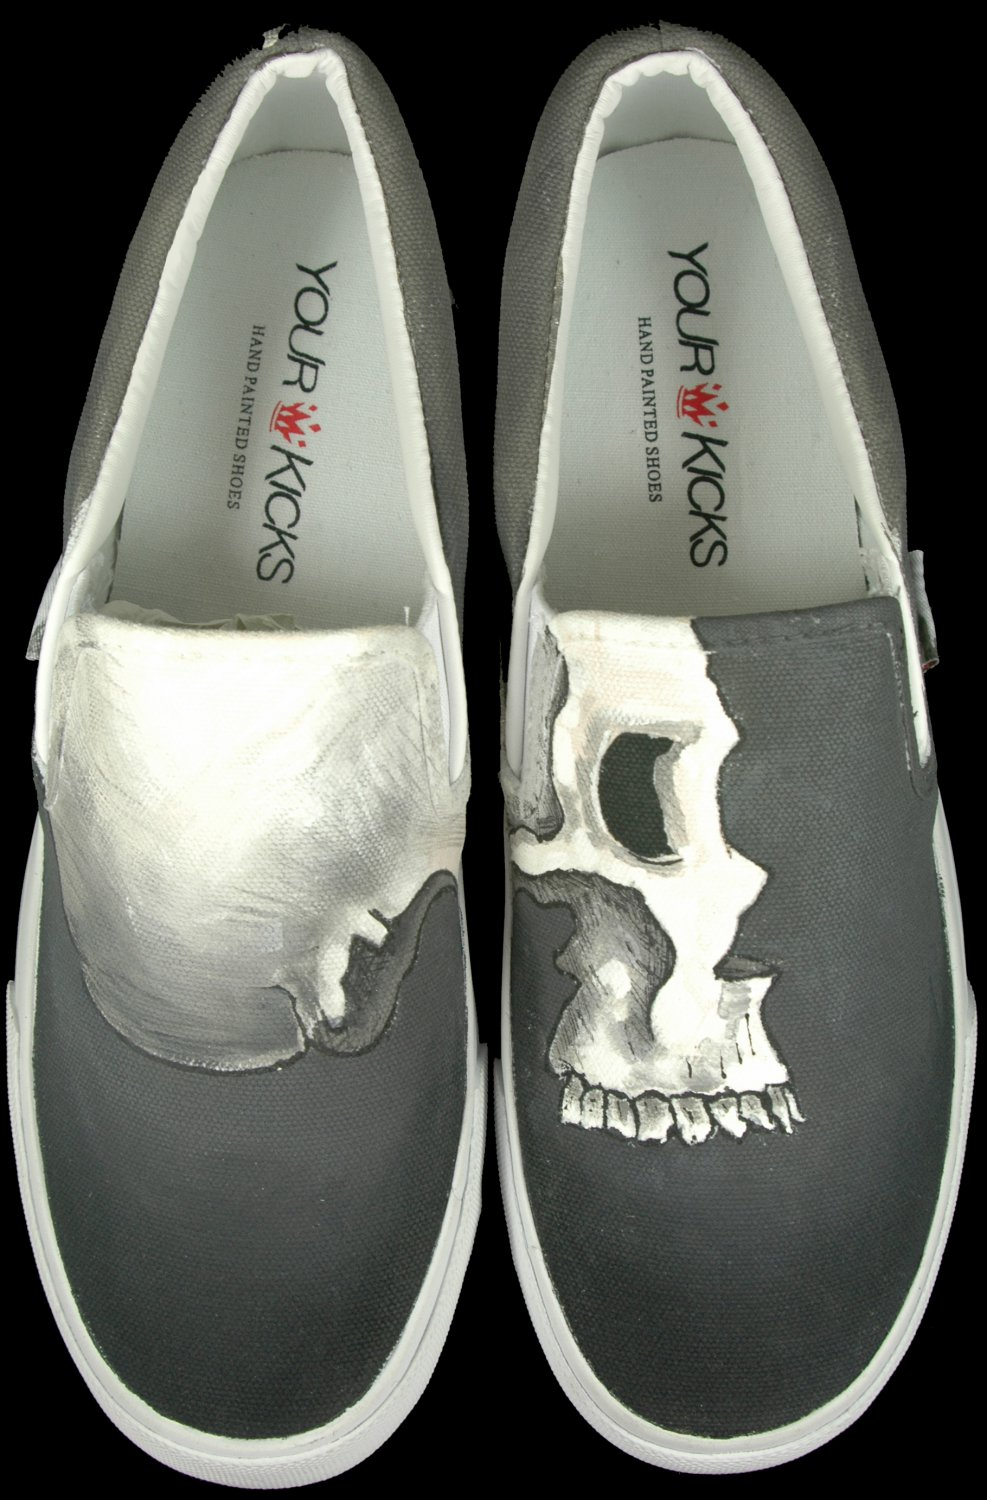 """Hand Painted Slip on Shoe Sneakers for Men - all sizes - """"The Hominid"""" Sneakers"""